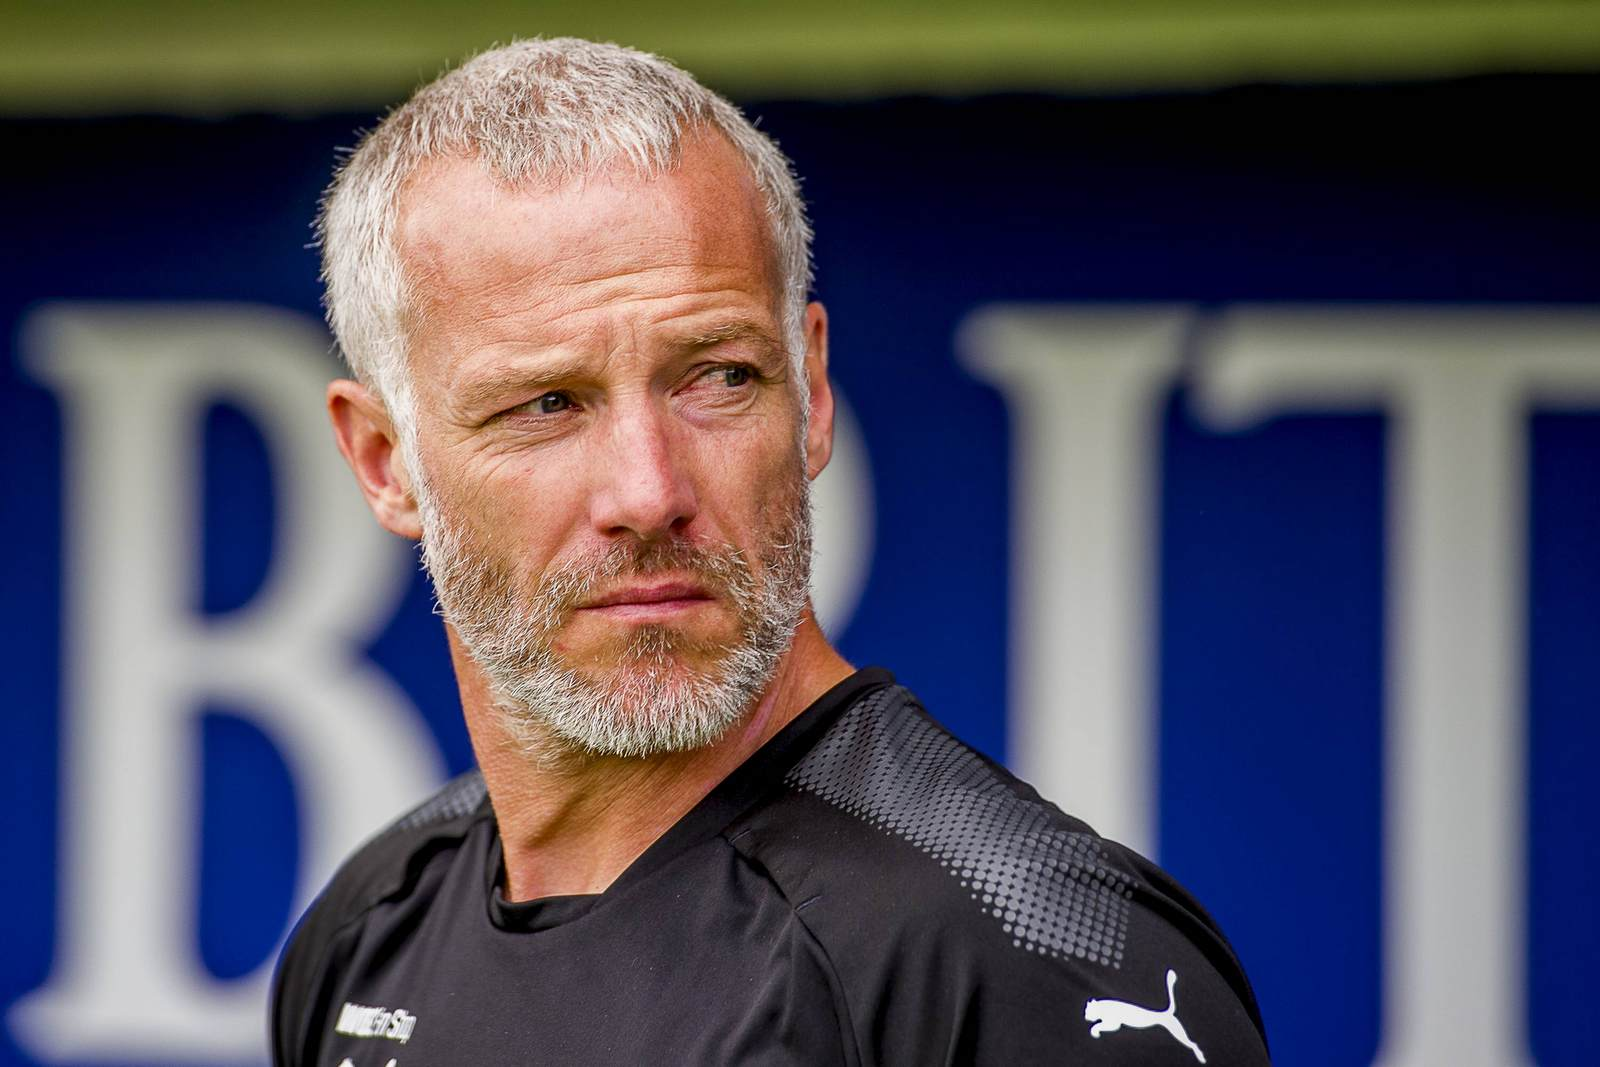 Der Trainer des FC Carl Zeiss Jena Mark Zimmermann